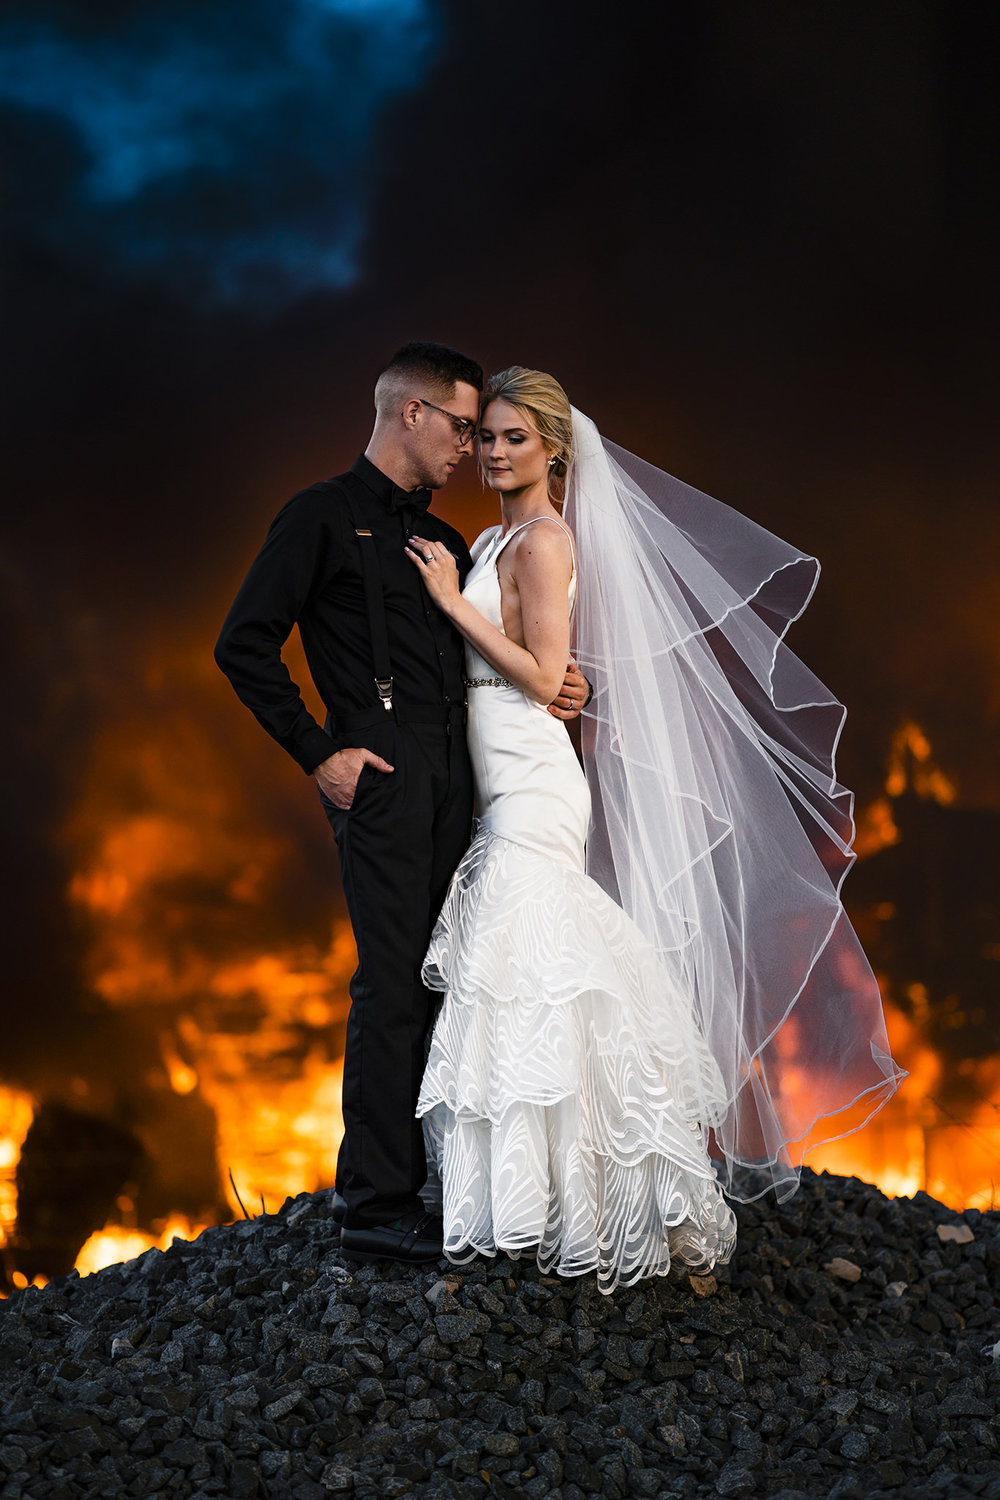 Fire Wedding Photo - Dayton Wedding Photographers - Studio 22 Photography